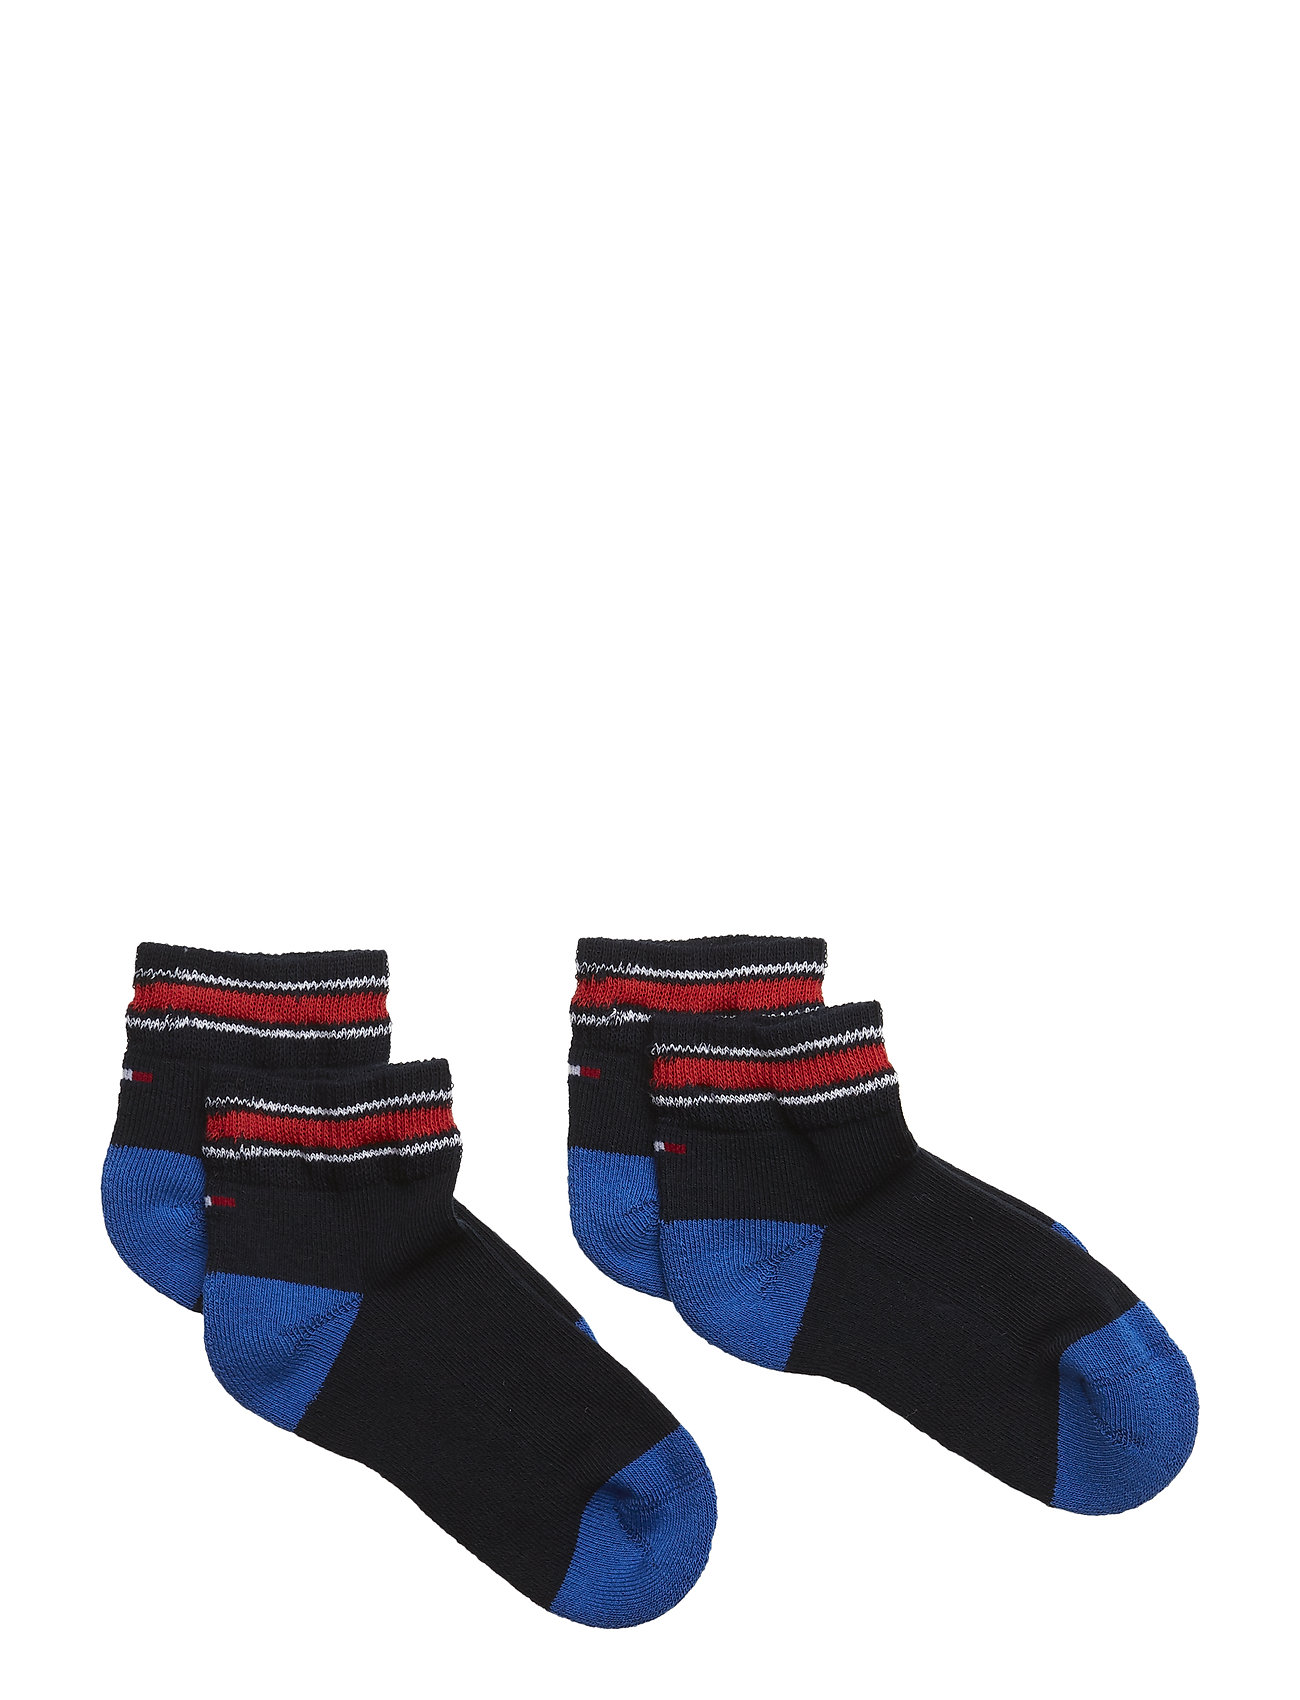 Tommy Hilfiger TH KIDS ICONIC SPORTS QUARTER 2P - MIDNIGHT BLUE